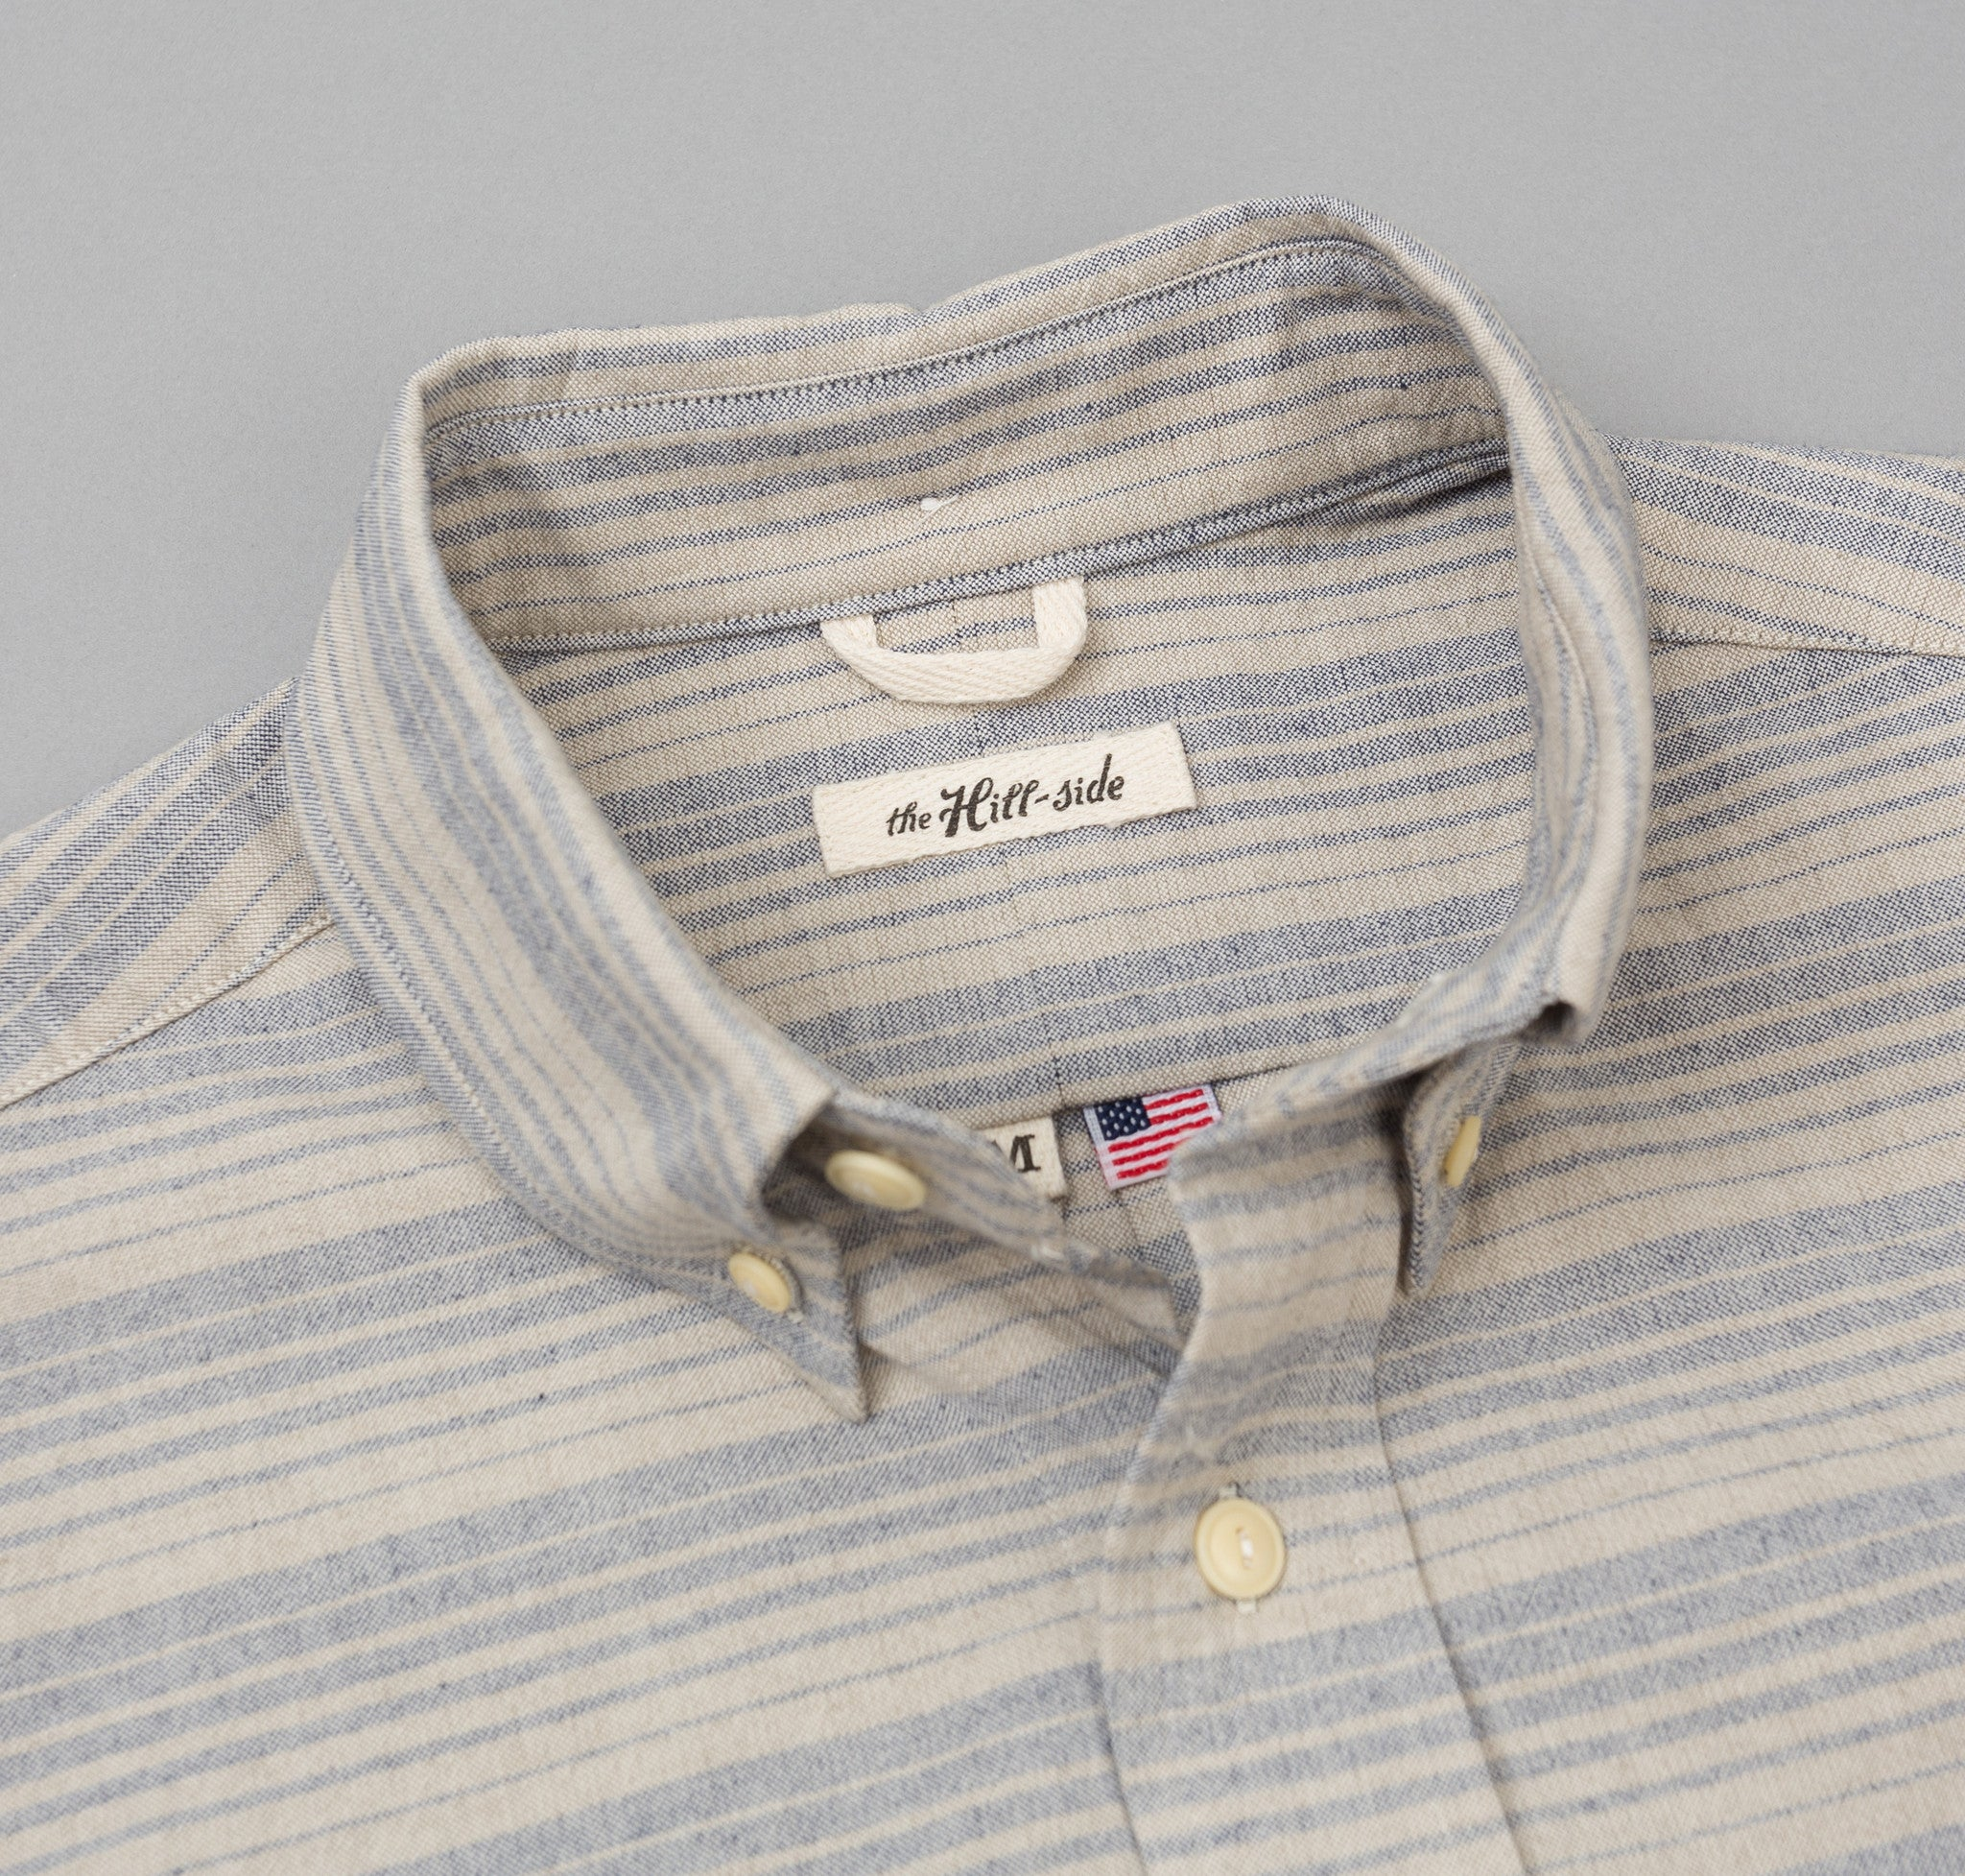 The Hill-Side - TH-S Mills Natural Warp Border Stripe Long Sleeve Standard Shirt, Navy / Tan Waterfall - SH1-356